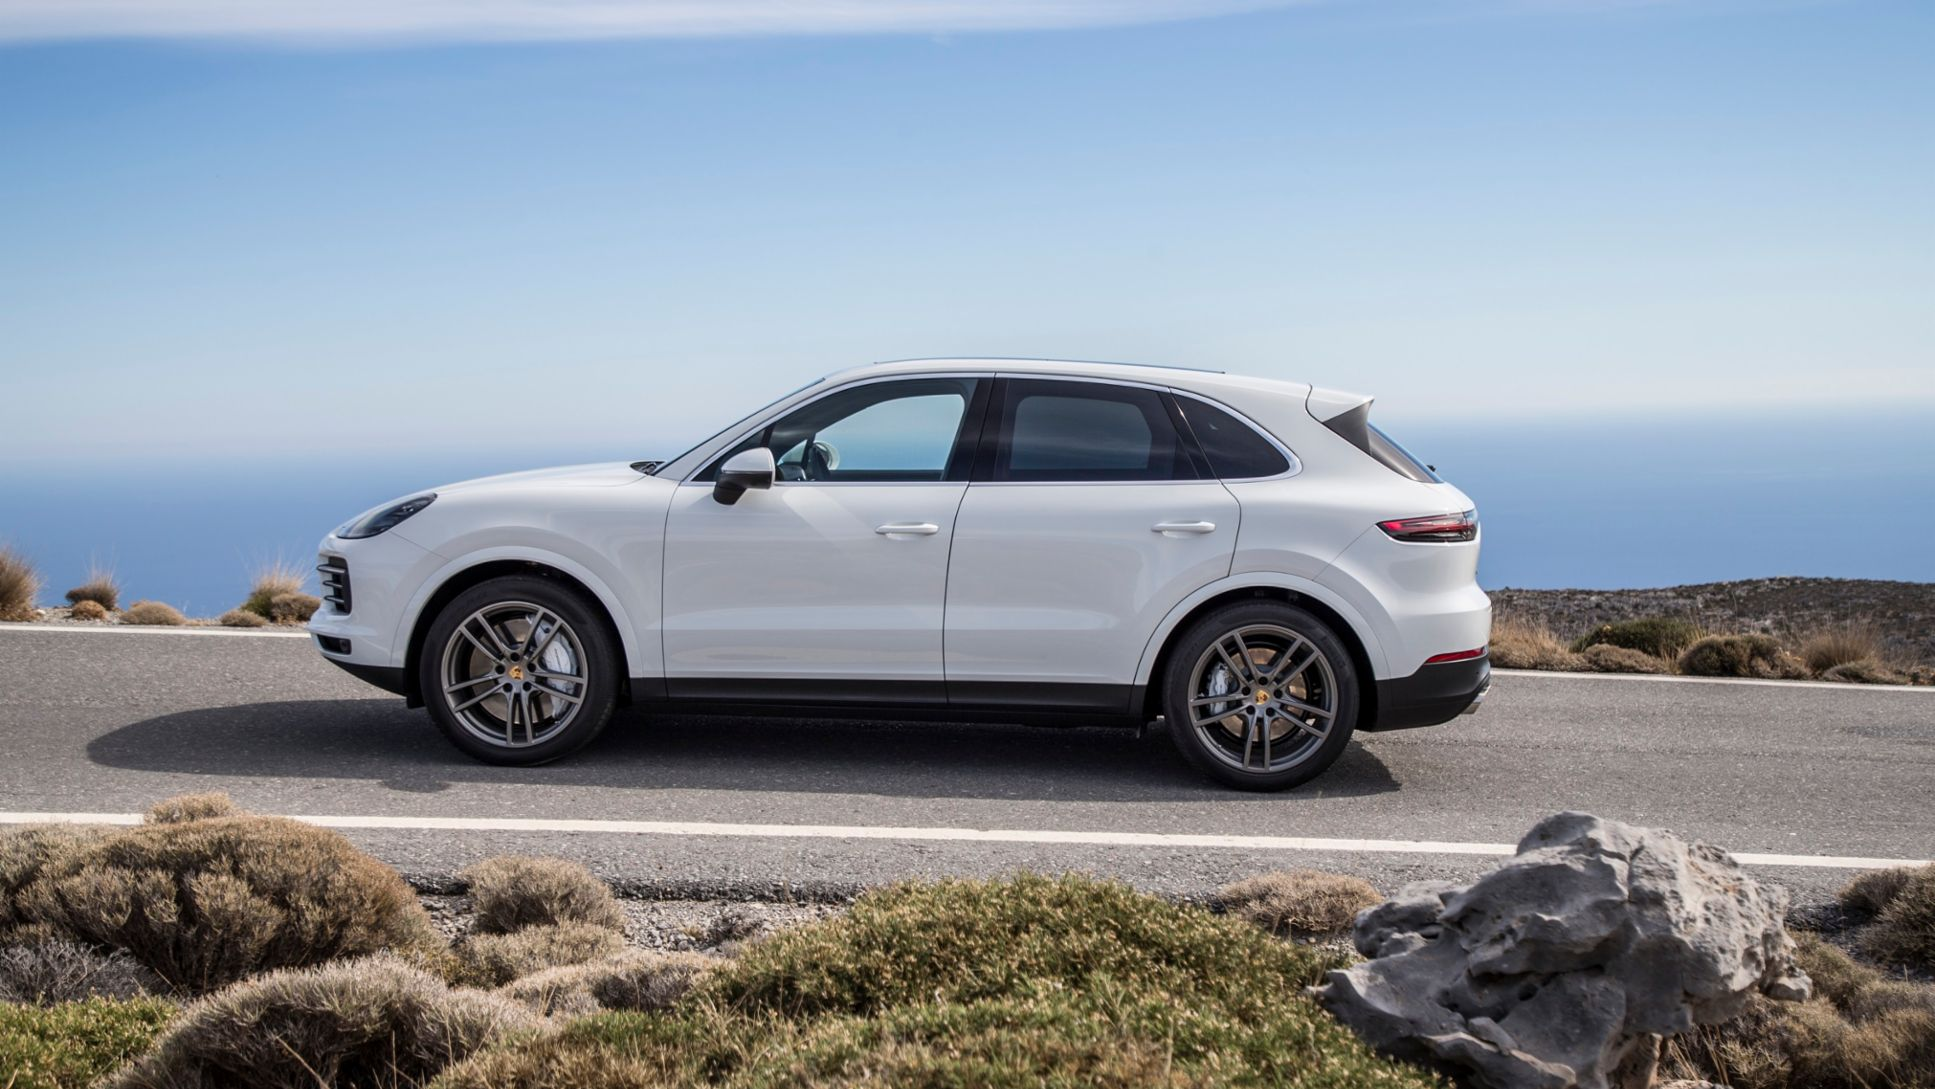 Porsche Reports Record U.S. Retail Sales in July. August 1, 2019, PCNA